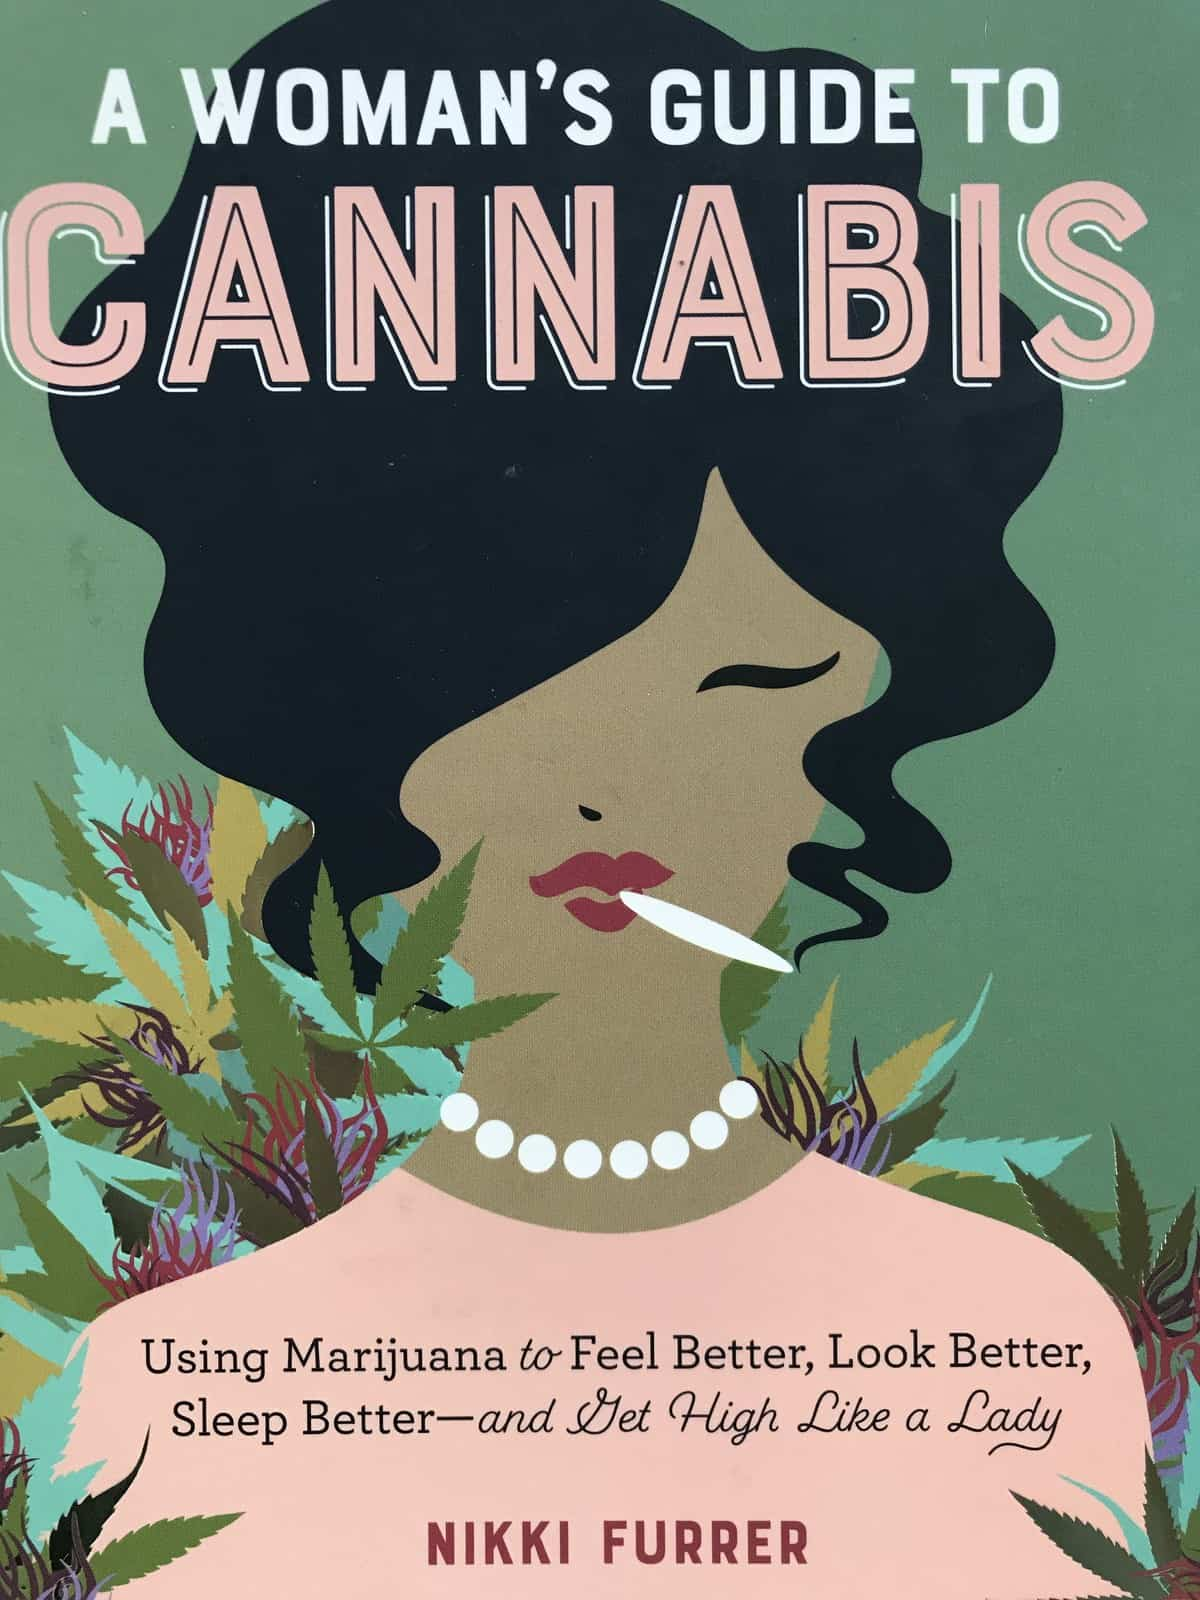 Book Review – A Woman's Guide to Cannabis by Nikki Furrer